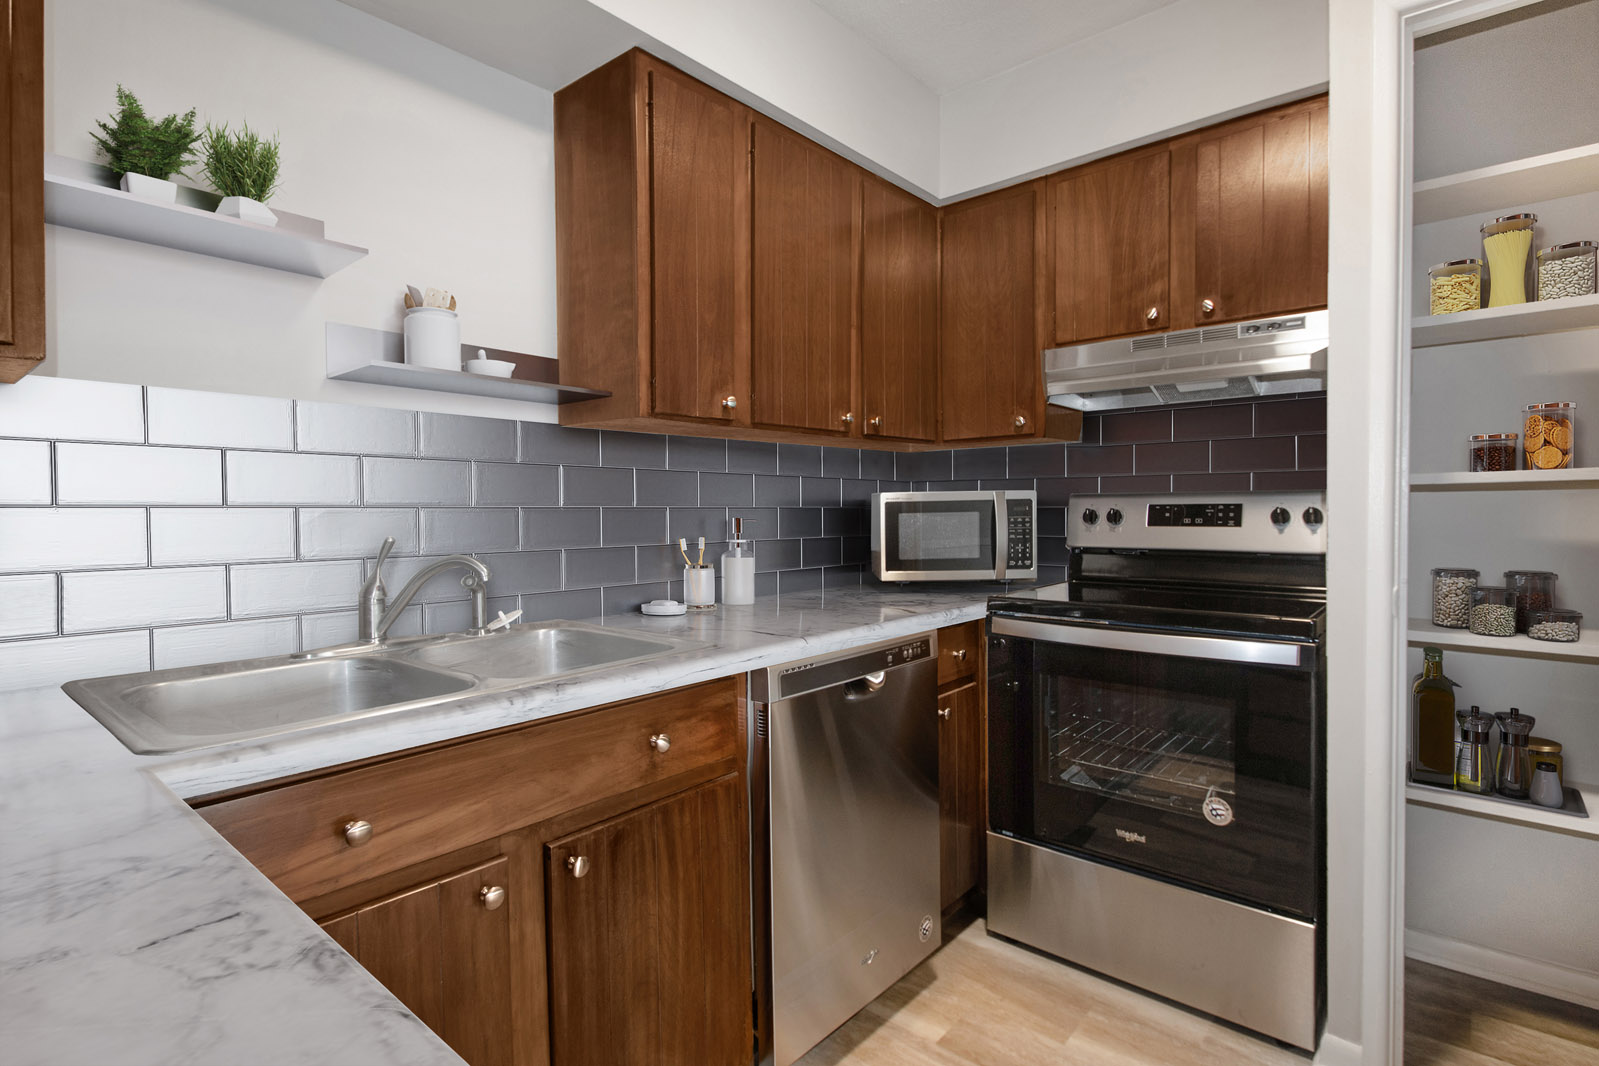 Newly Updated, Well-Equipped Kitchens at Pinehill Park in Bellevue, Nebraska